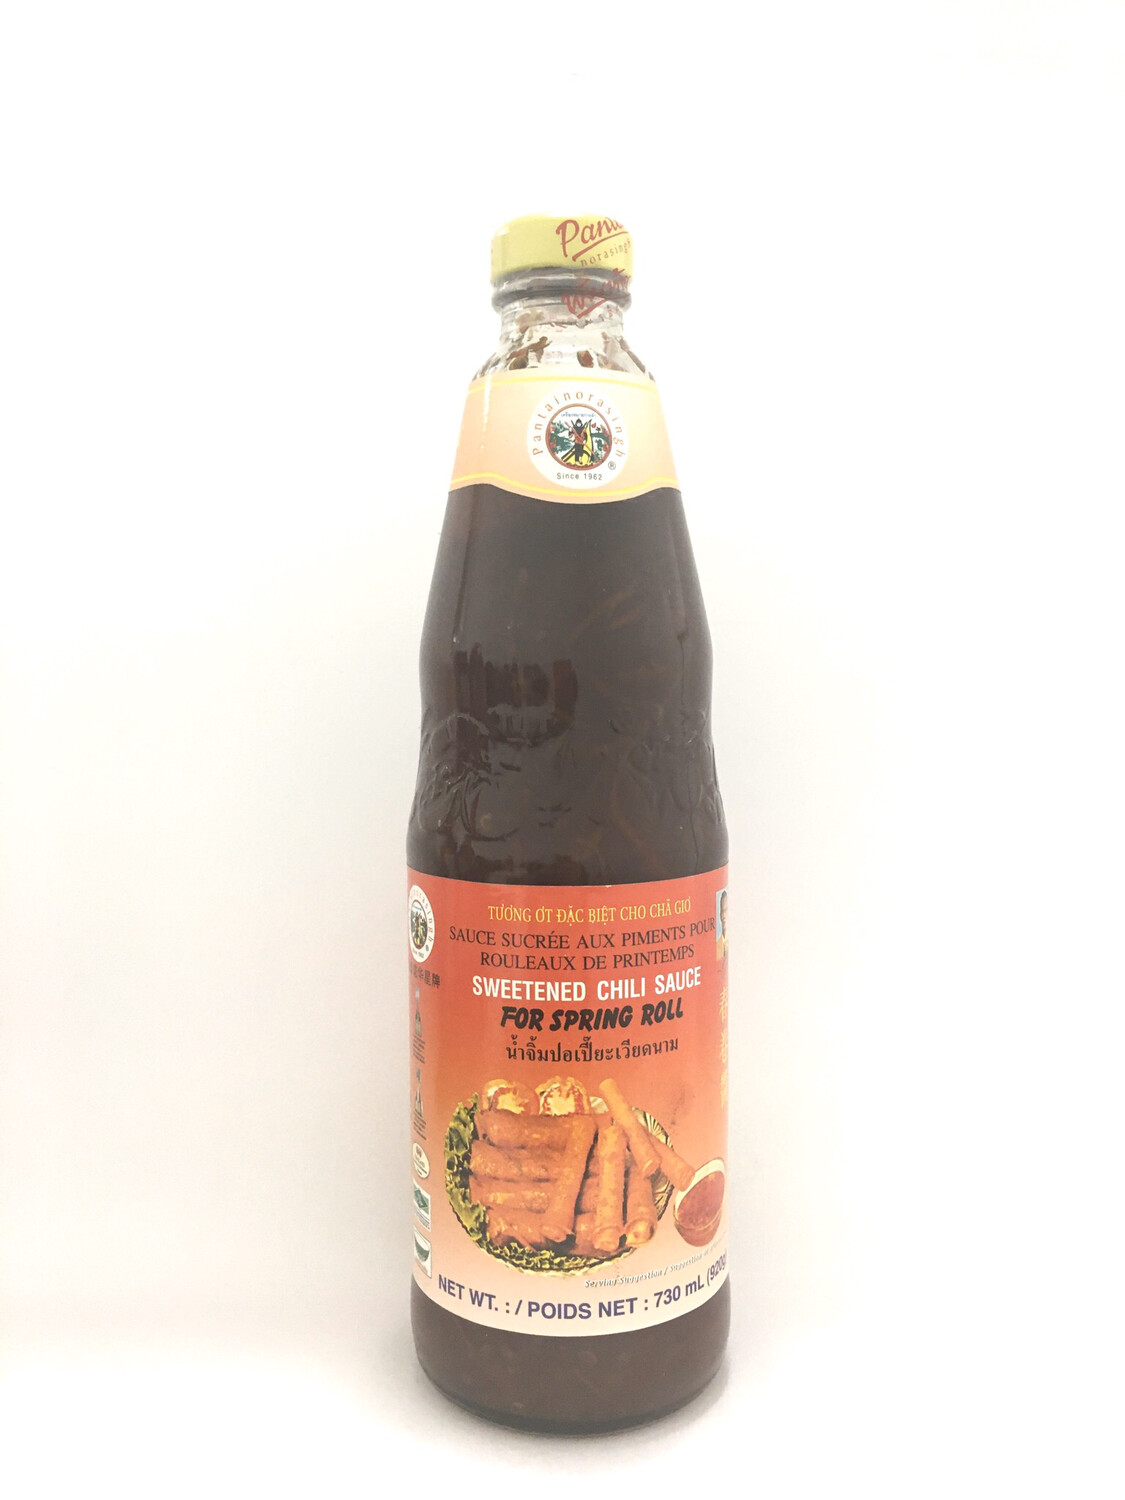 PANTAI SWEETENED CHILI SAUCE FOR SPRING ROLL 12X24OZ